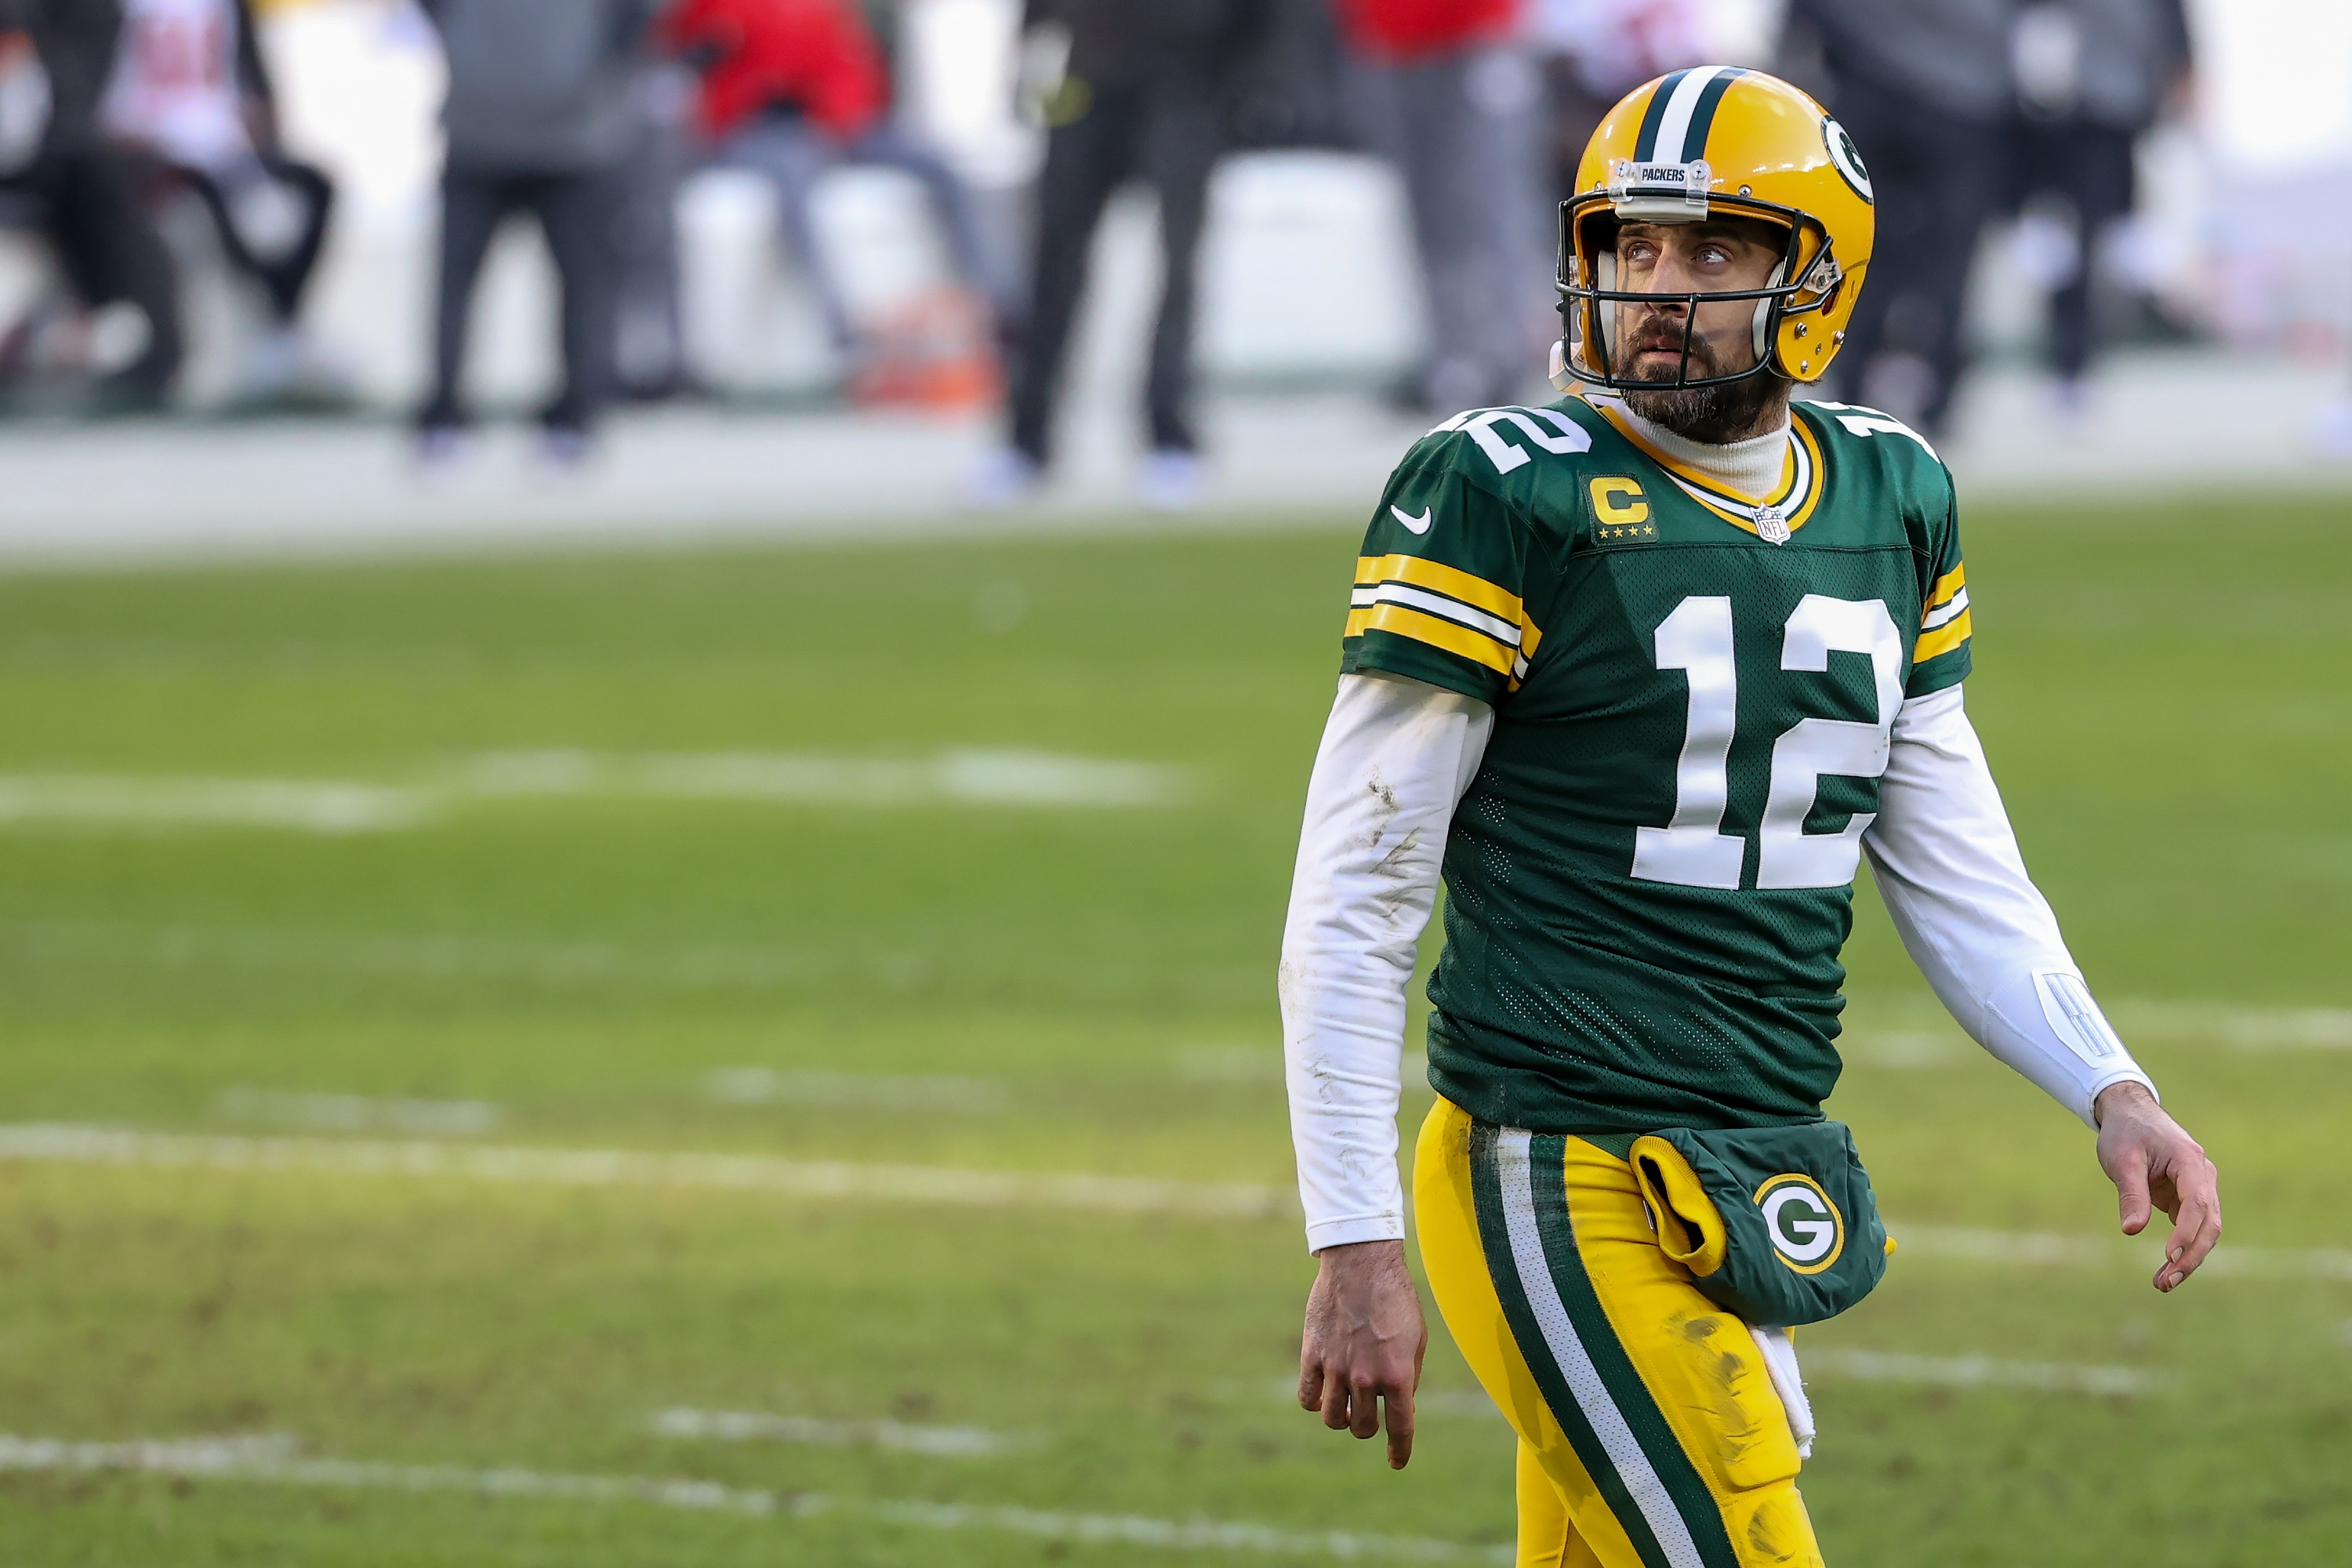 Aaron Rodgers Wants Out of Green Bay; Here Are a Few Unique but Proven Ways He Could Do It